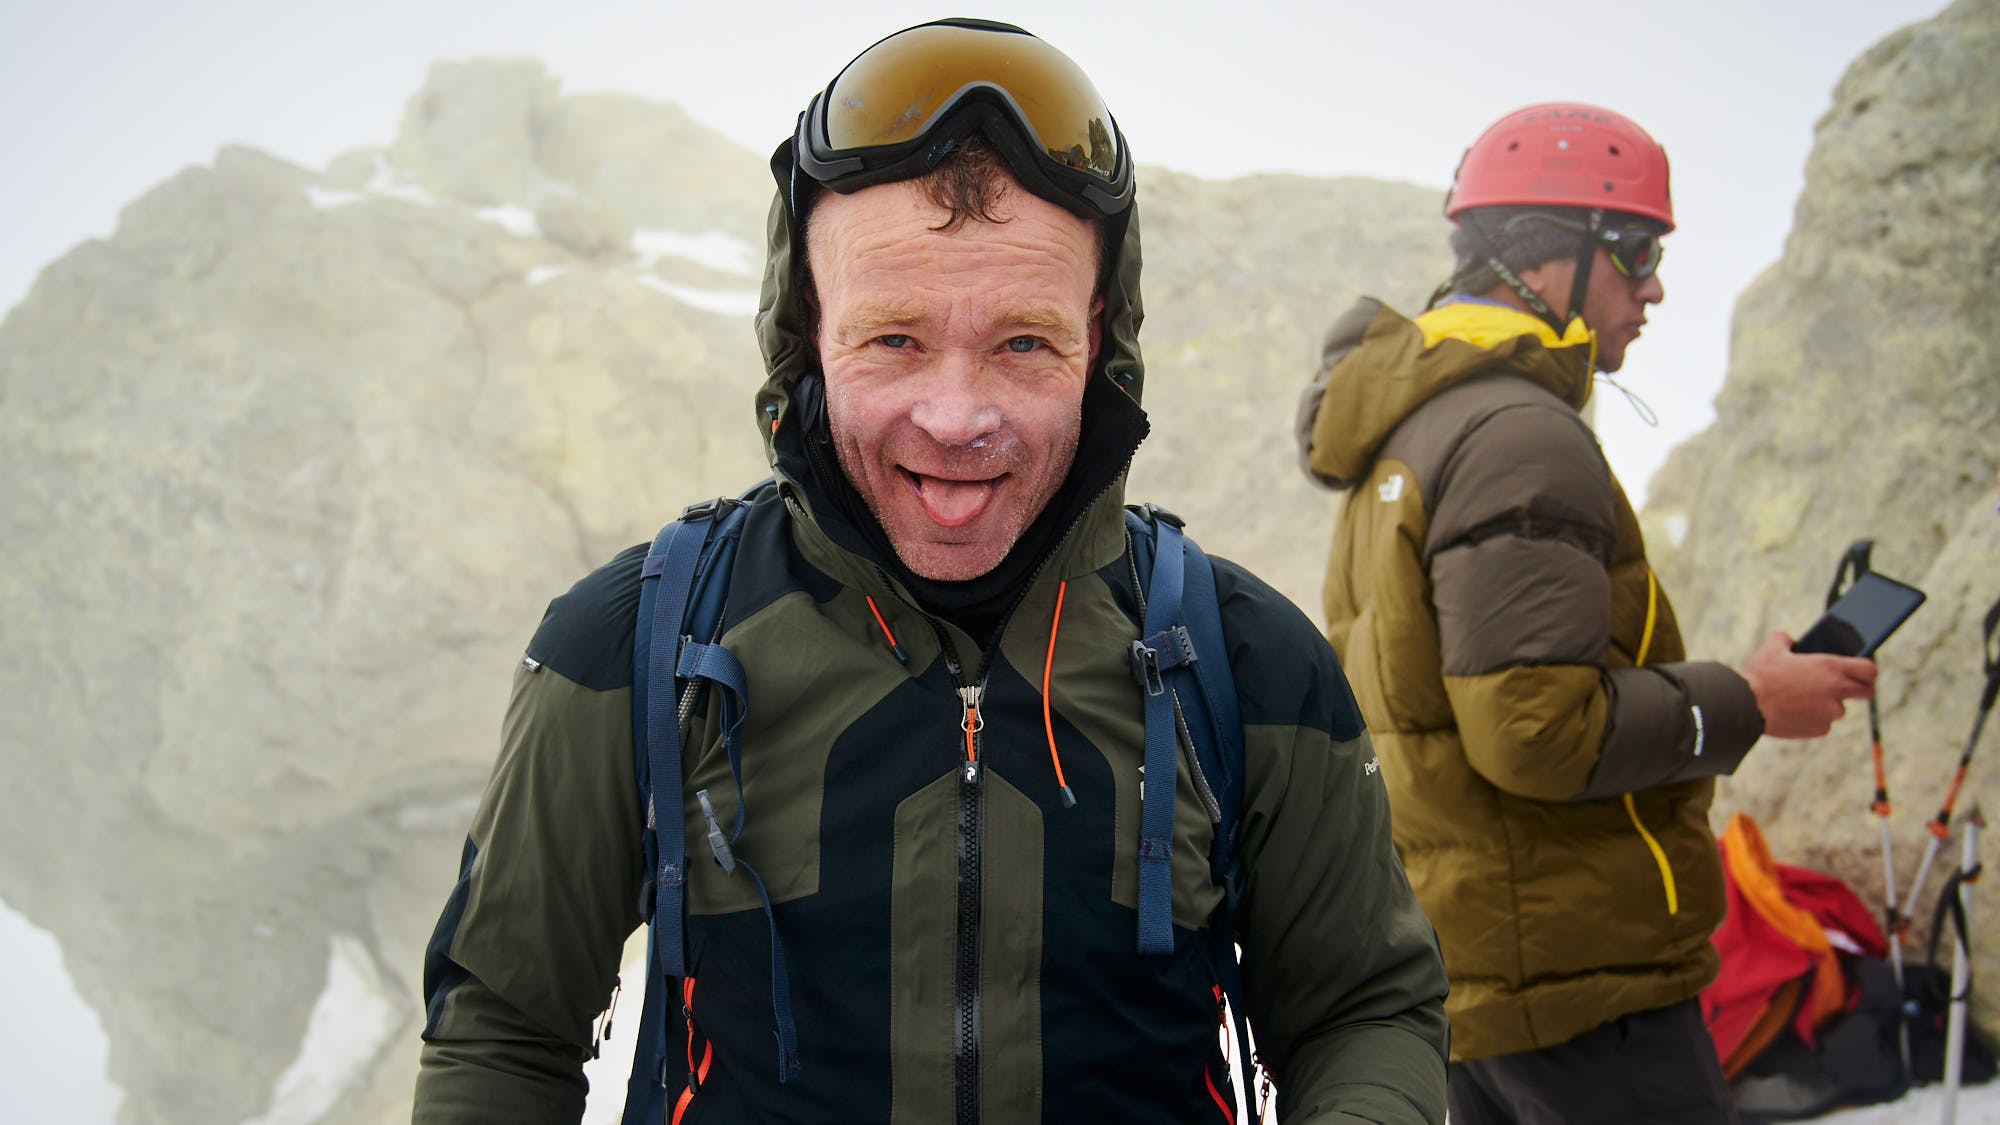 Relieved mountainer on the summit of Mount Damavand in Iran